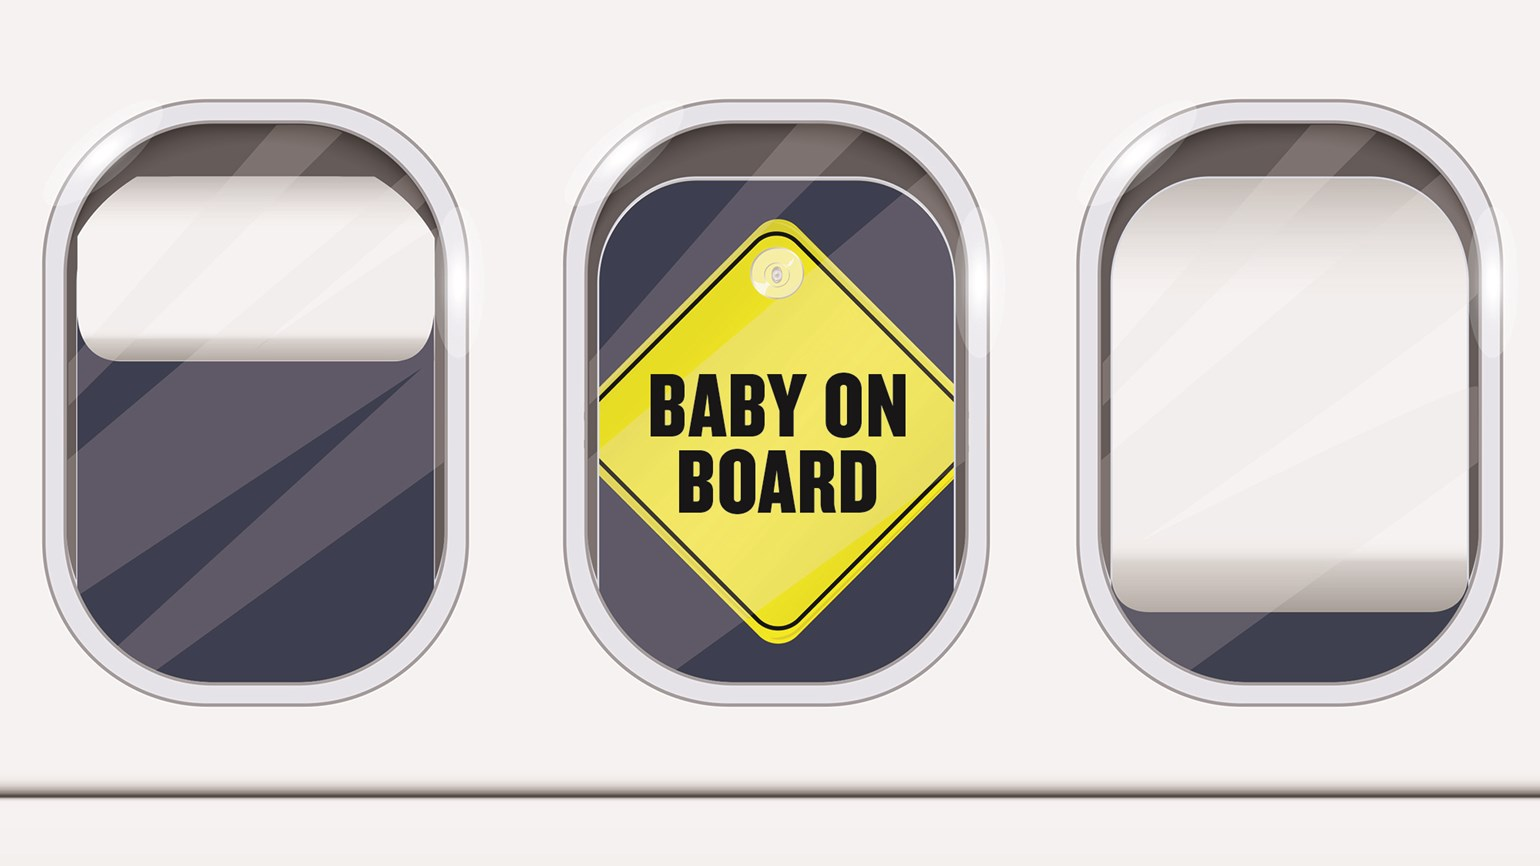 Baby on board: Traveling with infants